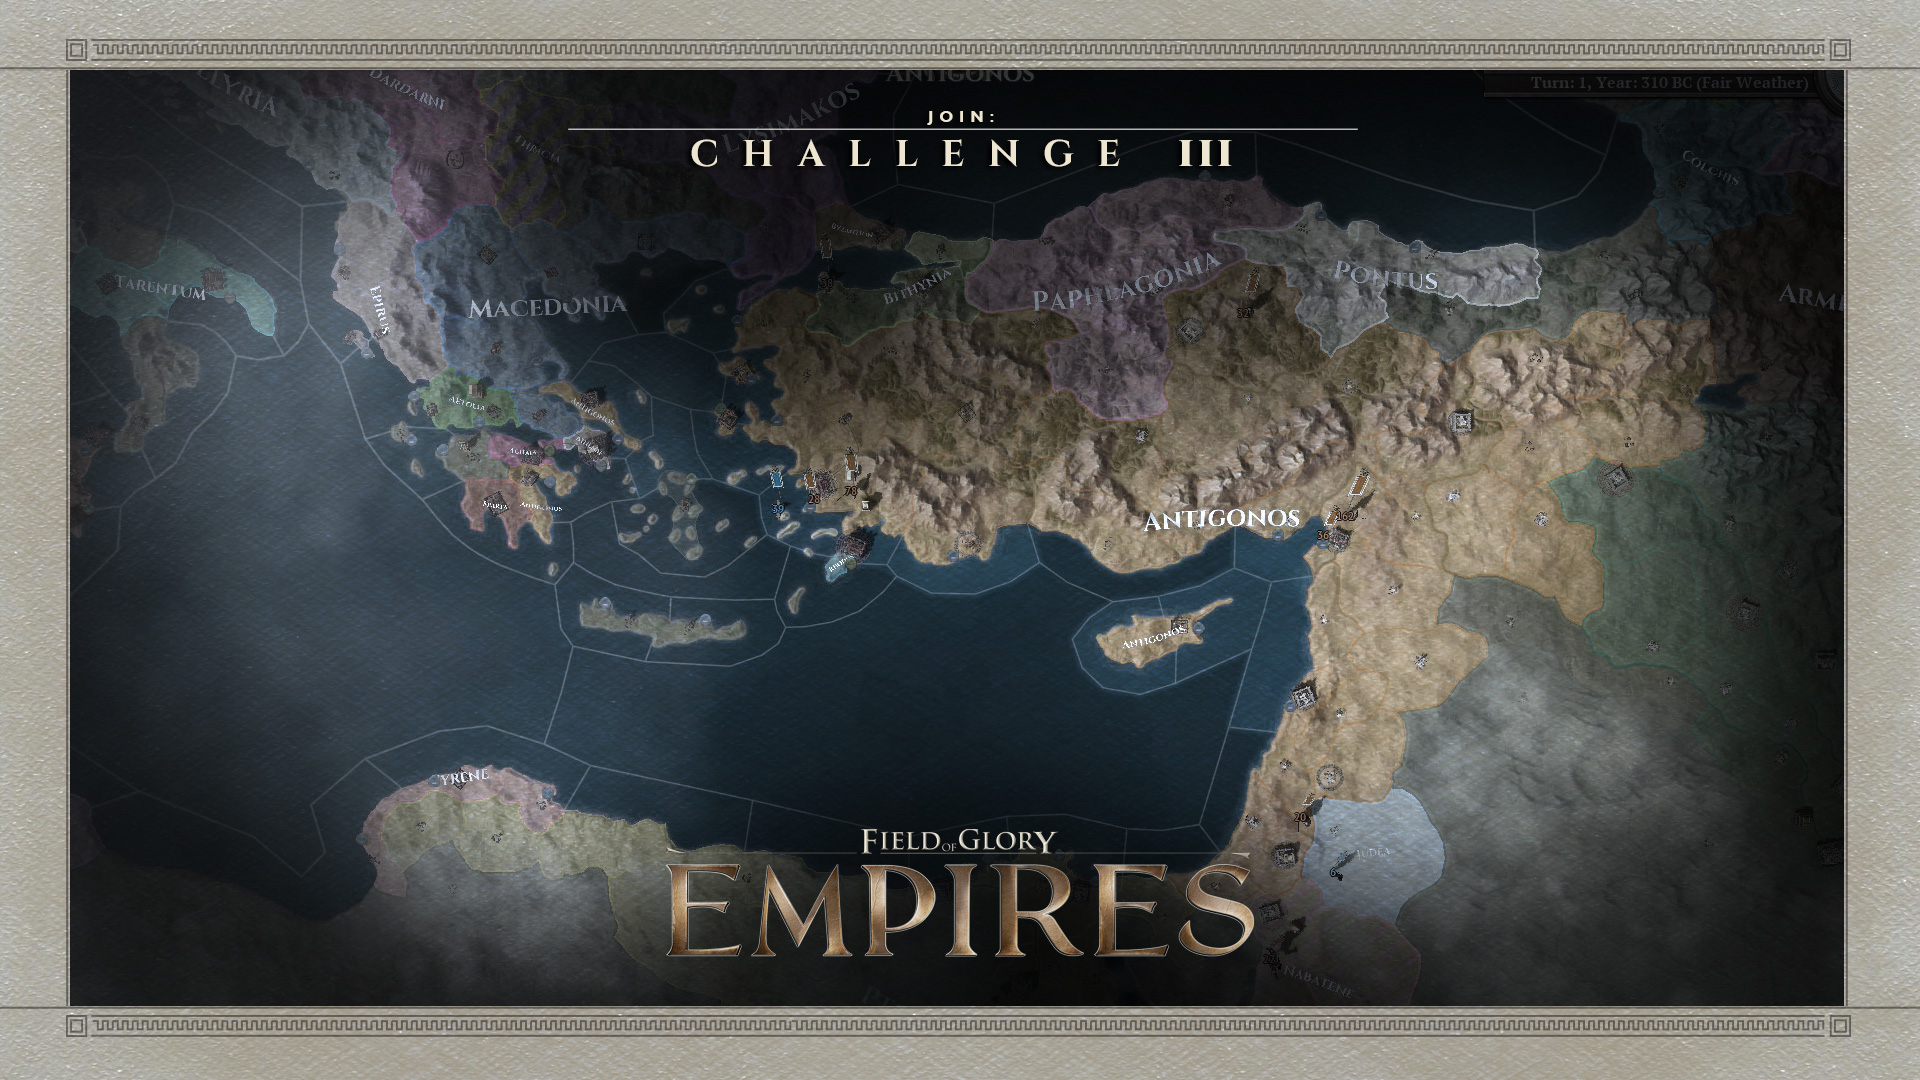 FoG_Empires_twitch-cover_challenge3-noda